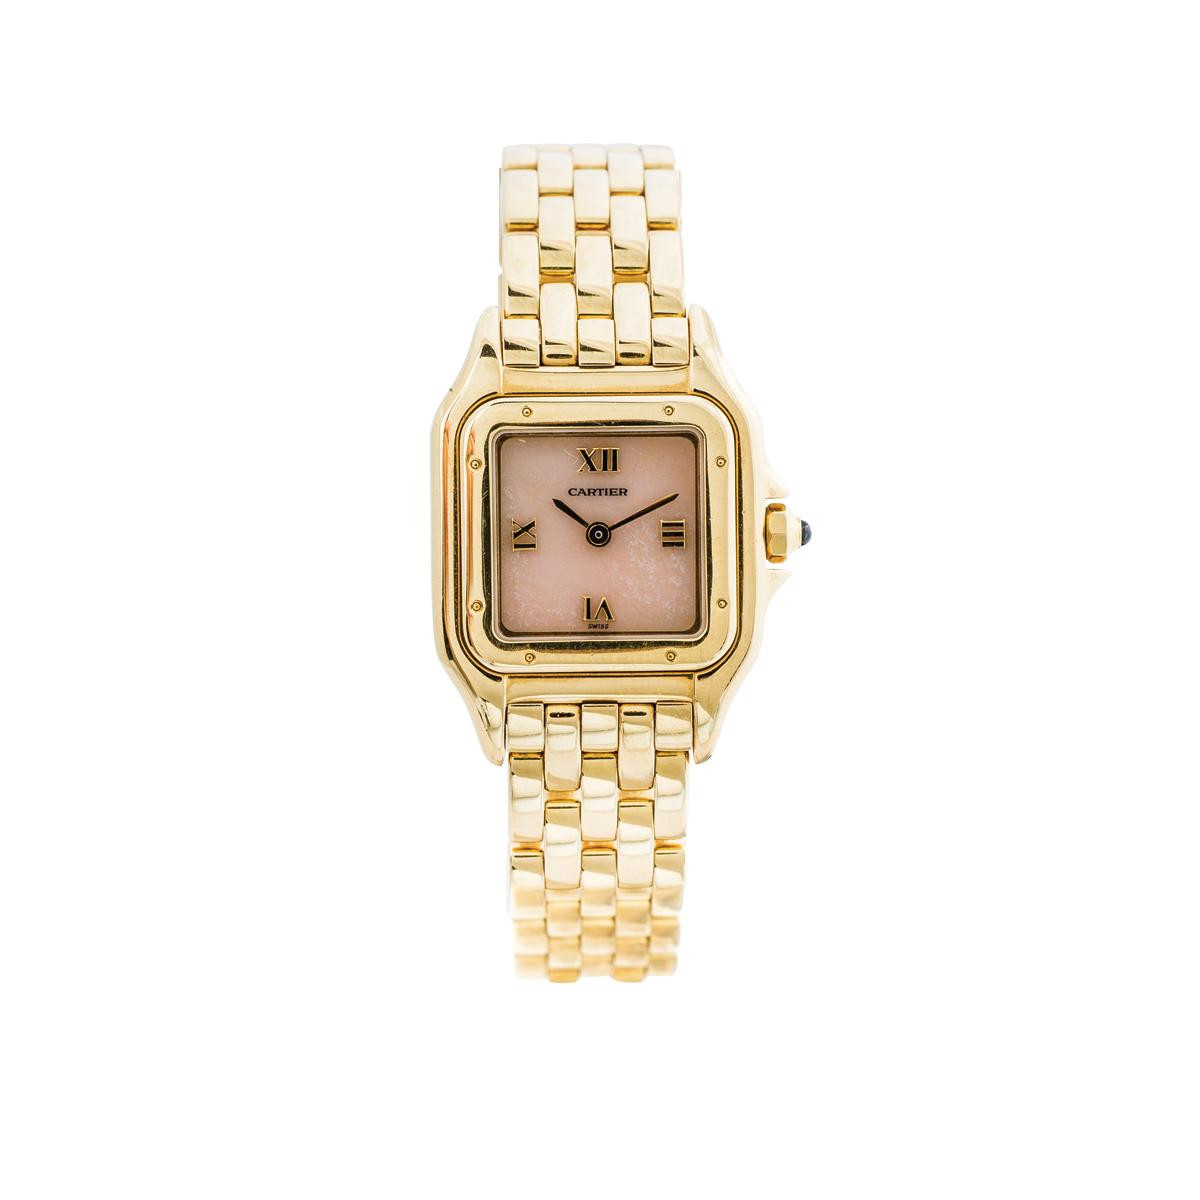 Preowned 18K Gold Women's Pink Cartier Panther